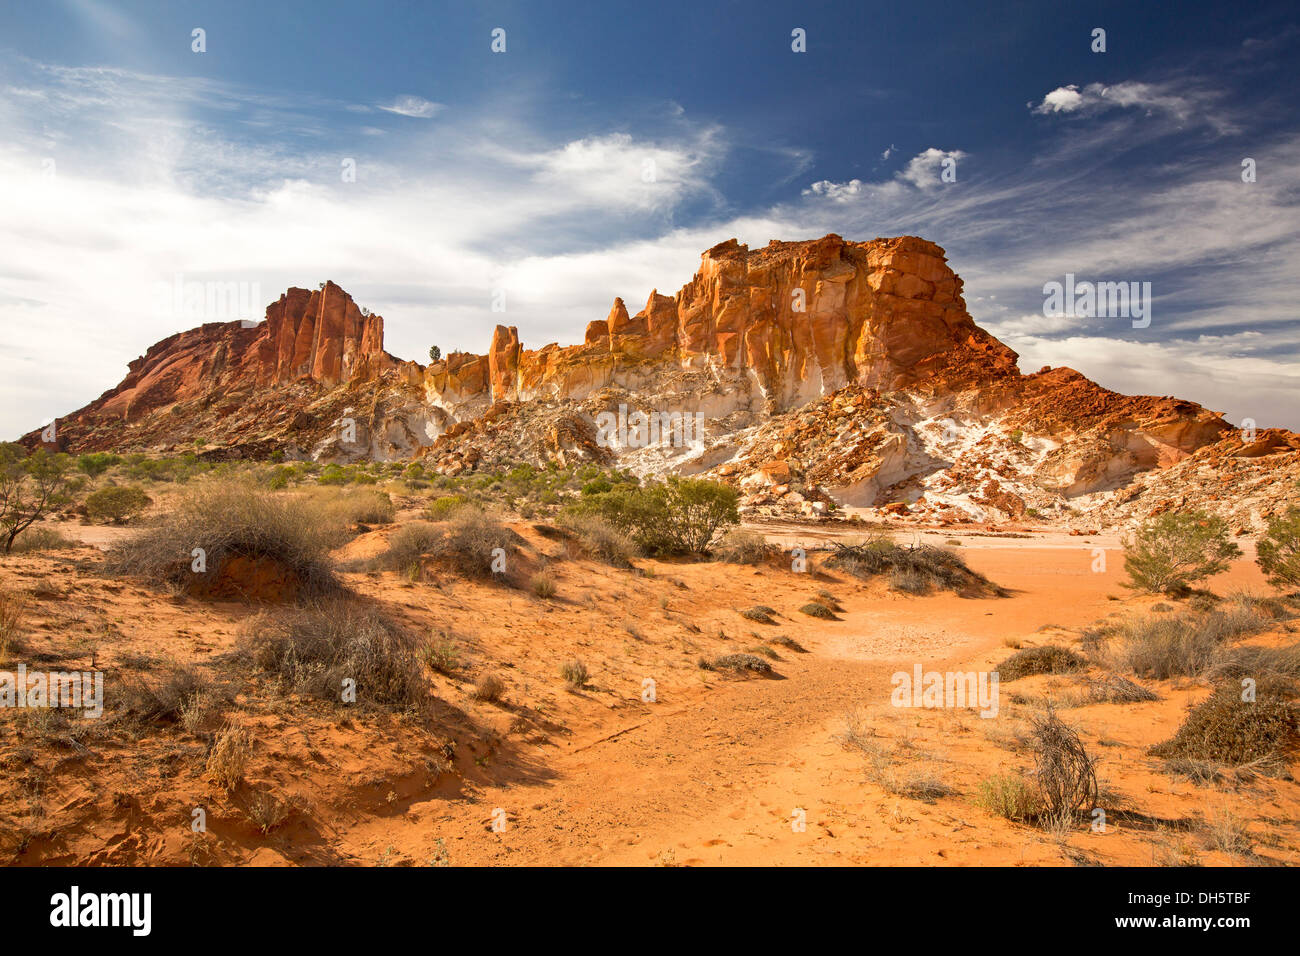 Spectacular Australian outback desert landscape with golden rocky outcrop at Rainbow Valley central Australia NT - Stock Image